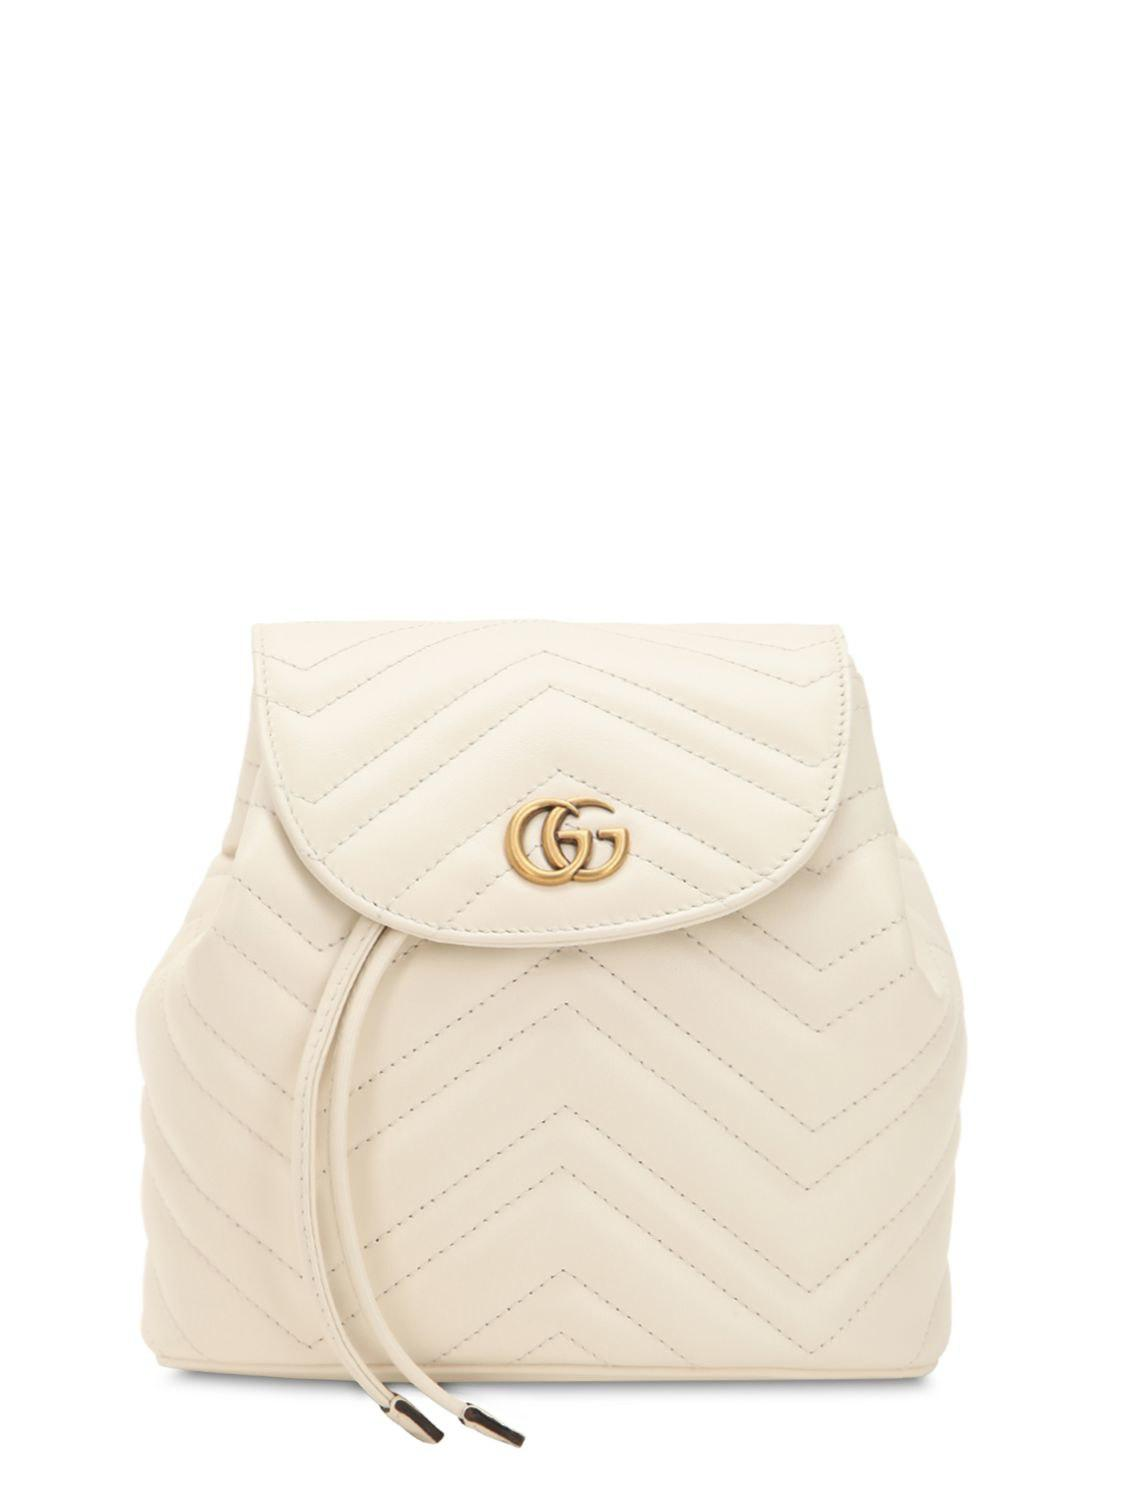 e2dec13b3799 Lyst - Gucci Mini Gg Marmont Leather Backpack in White